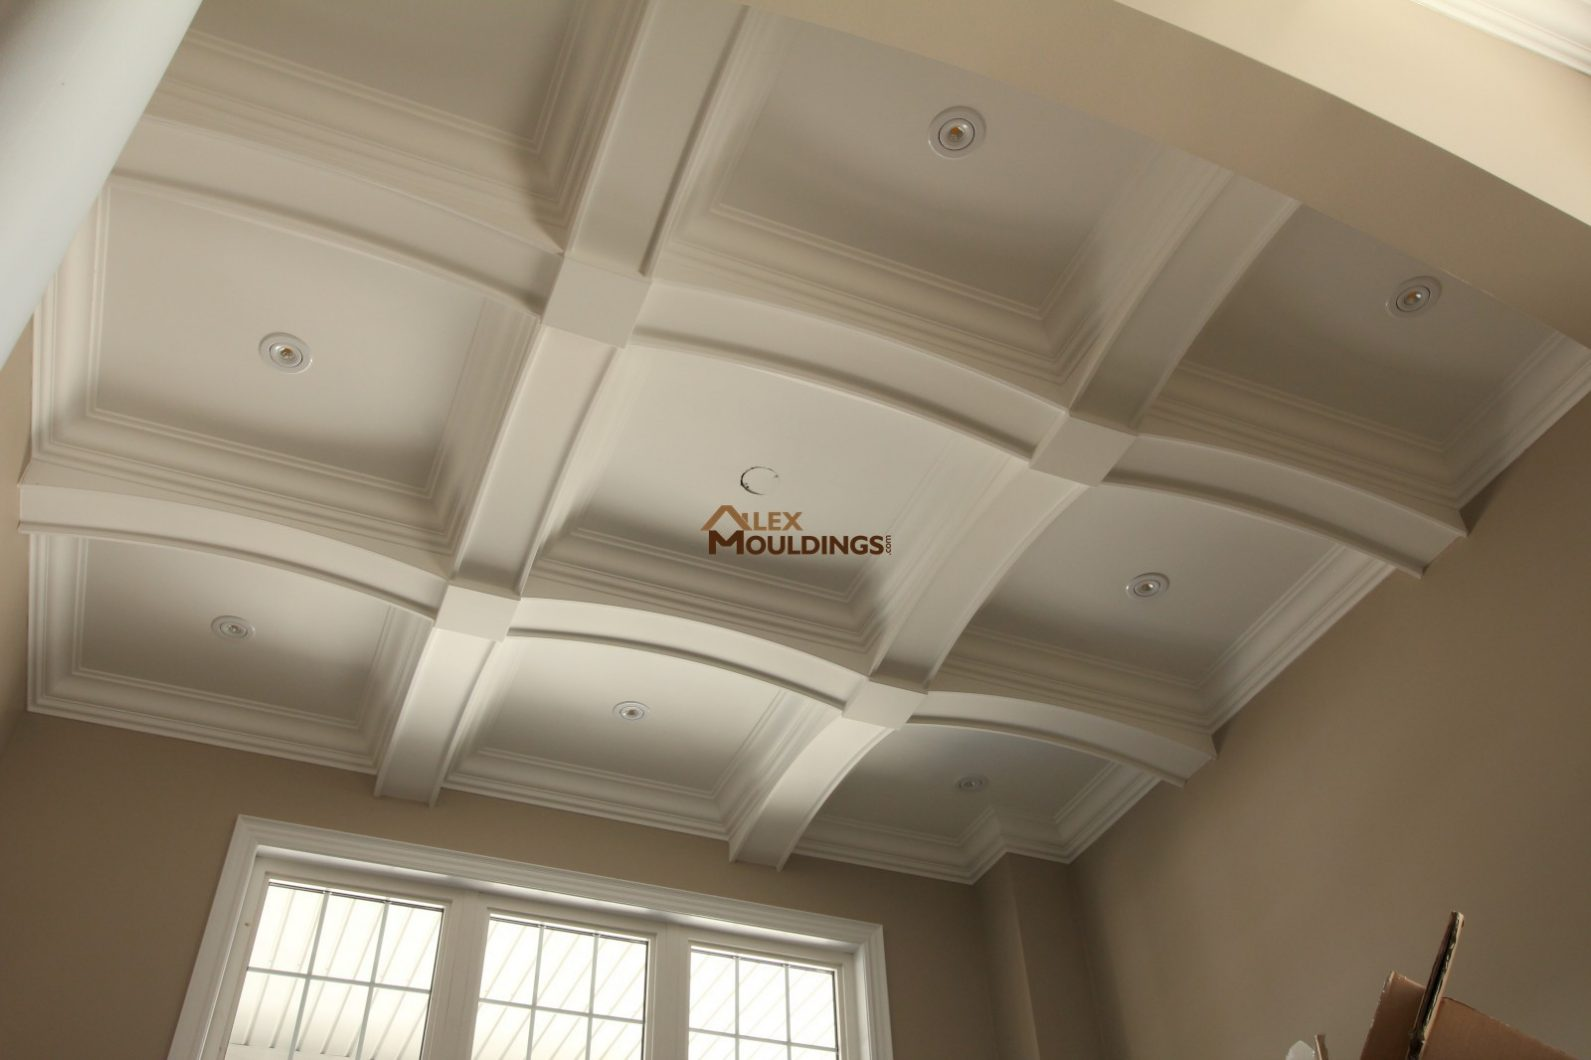 151 Special Coffered Waffle Ceilings Making Homes Look Richer In Architecture